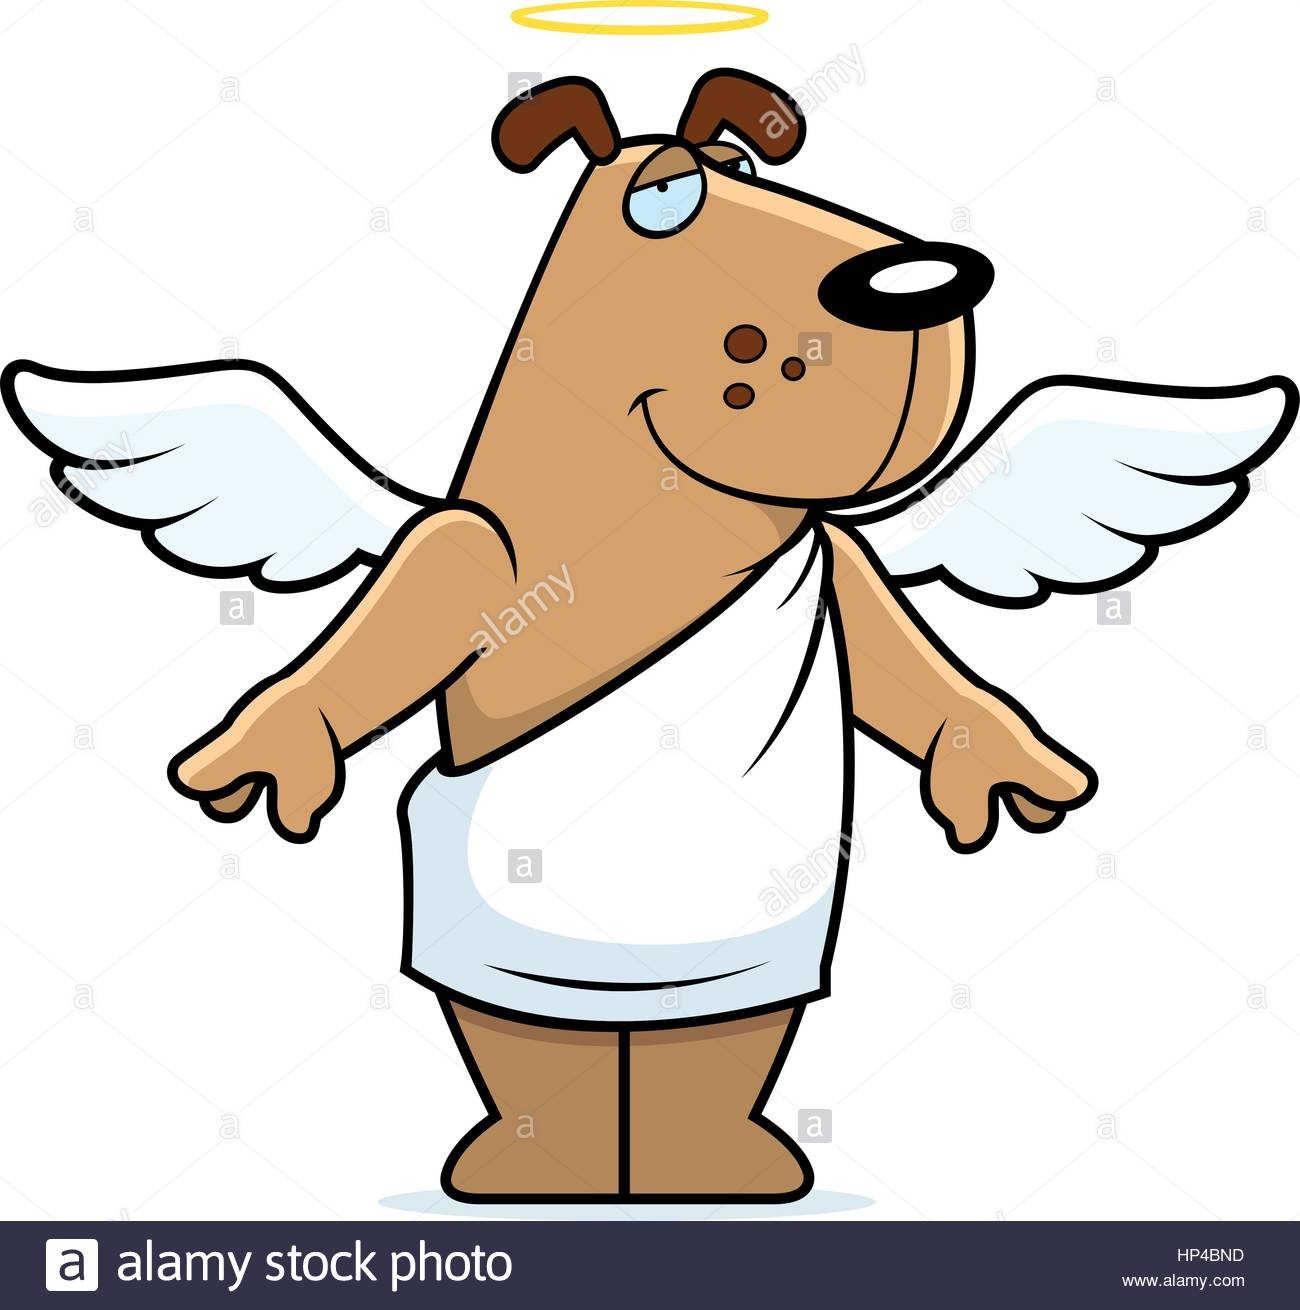 1300x1310 A Happy Cartoon Angel Dog With Wings And A Halo Stock Vector Art